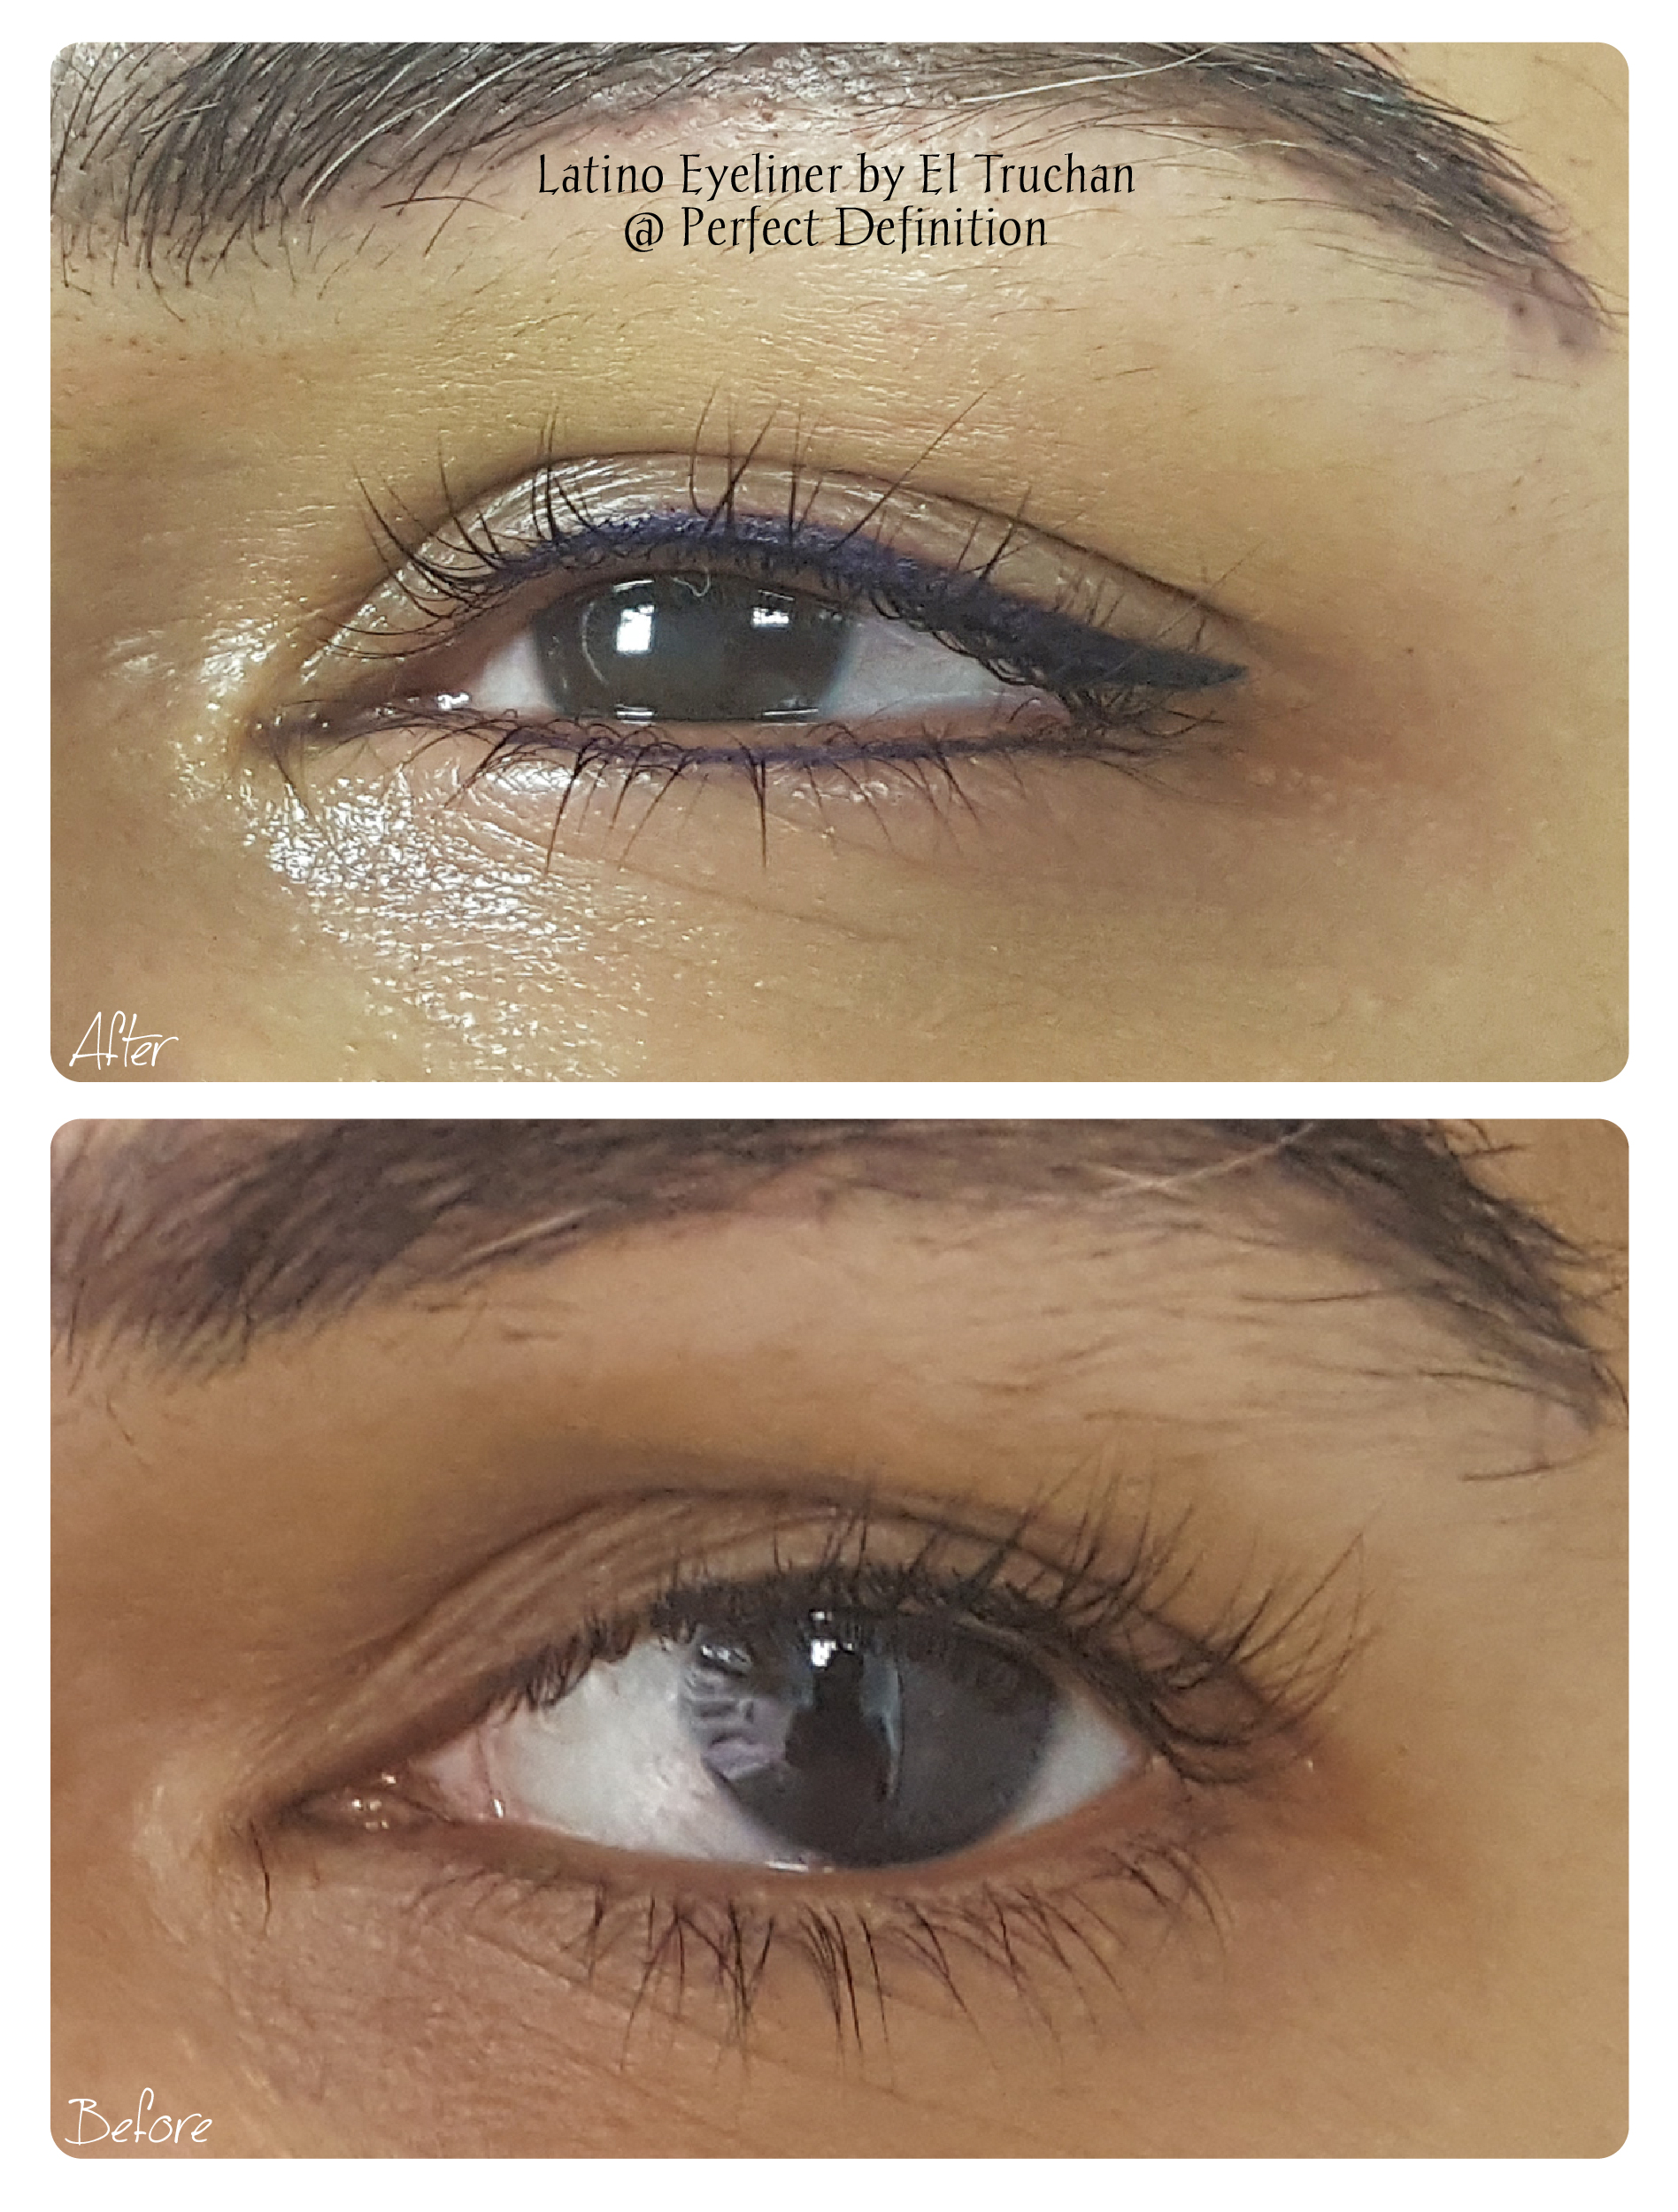 Latino Eyeliner by El Truchan _ Perfect Definition 907